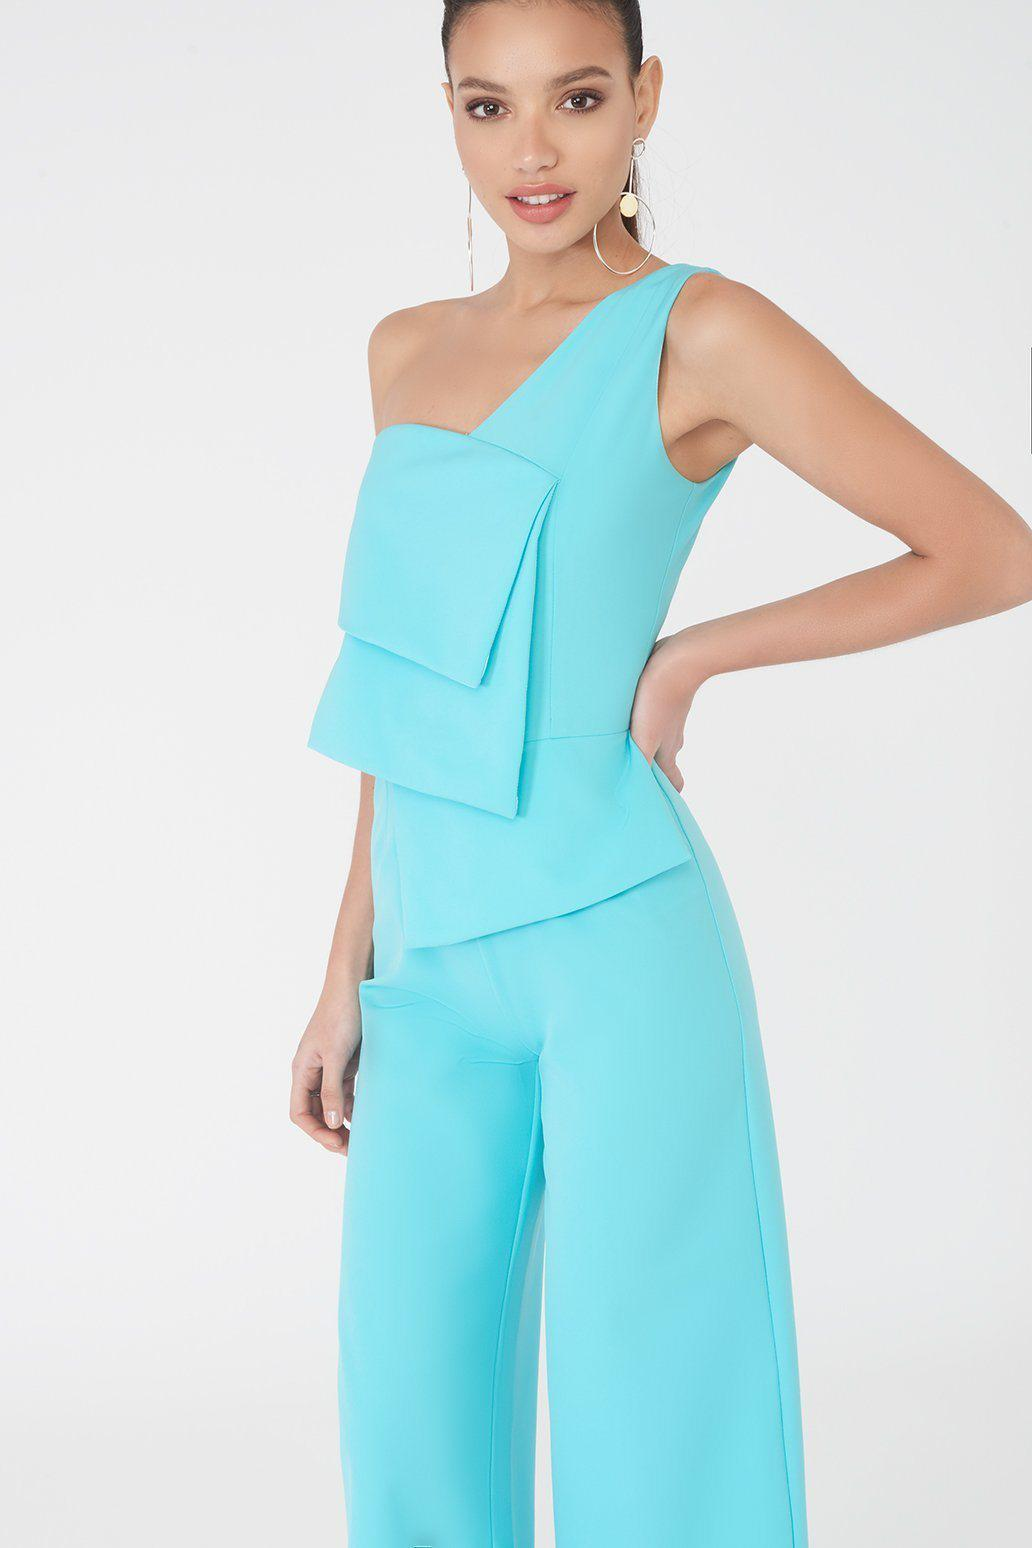 eb3f6468312 Lavish Alice - Blue Layered One Shoulder Culotte Jumpsuit In Turquoise -  Lyst. View fullscreen